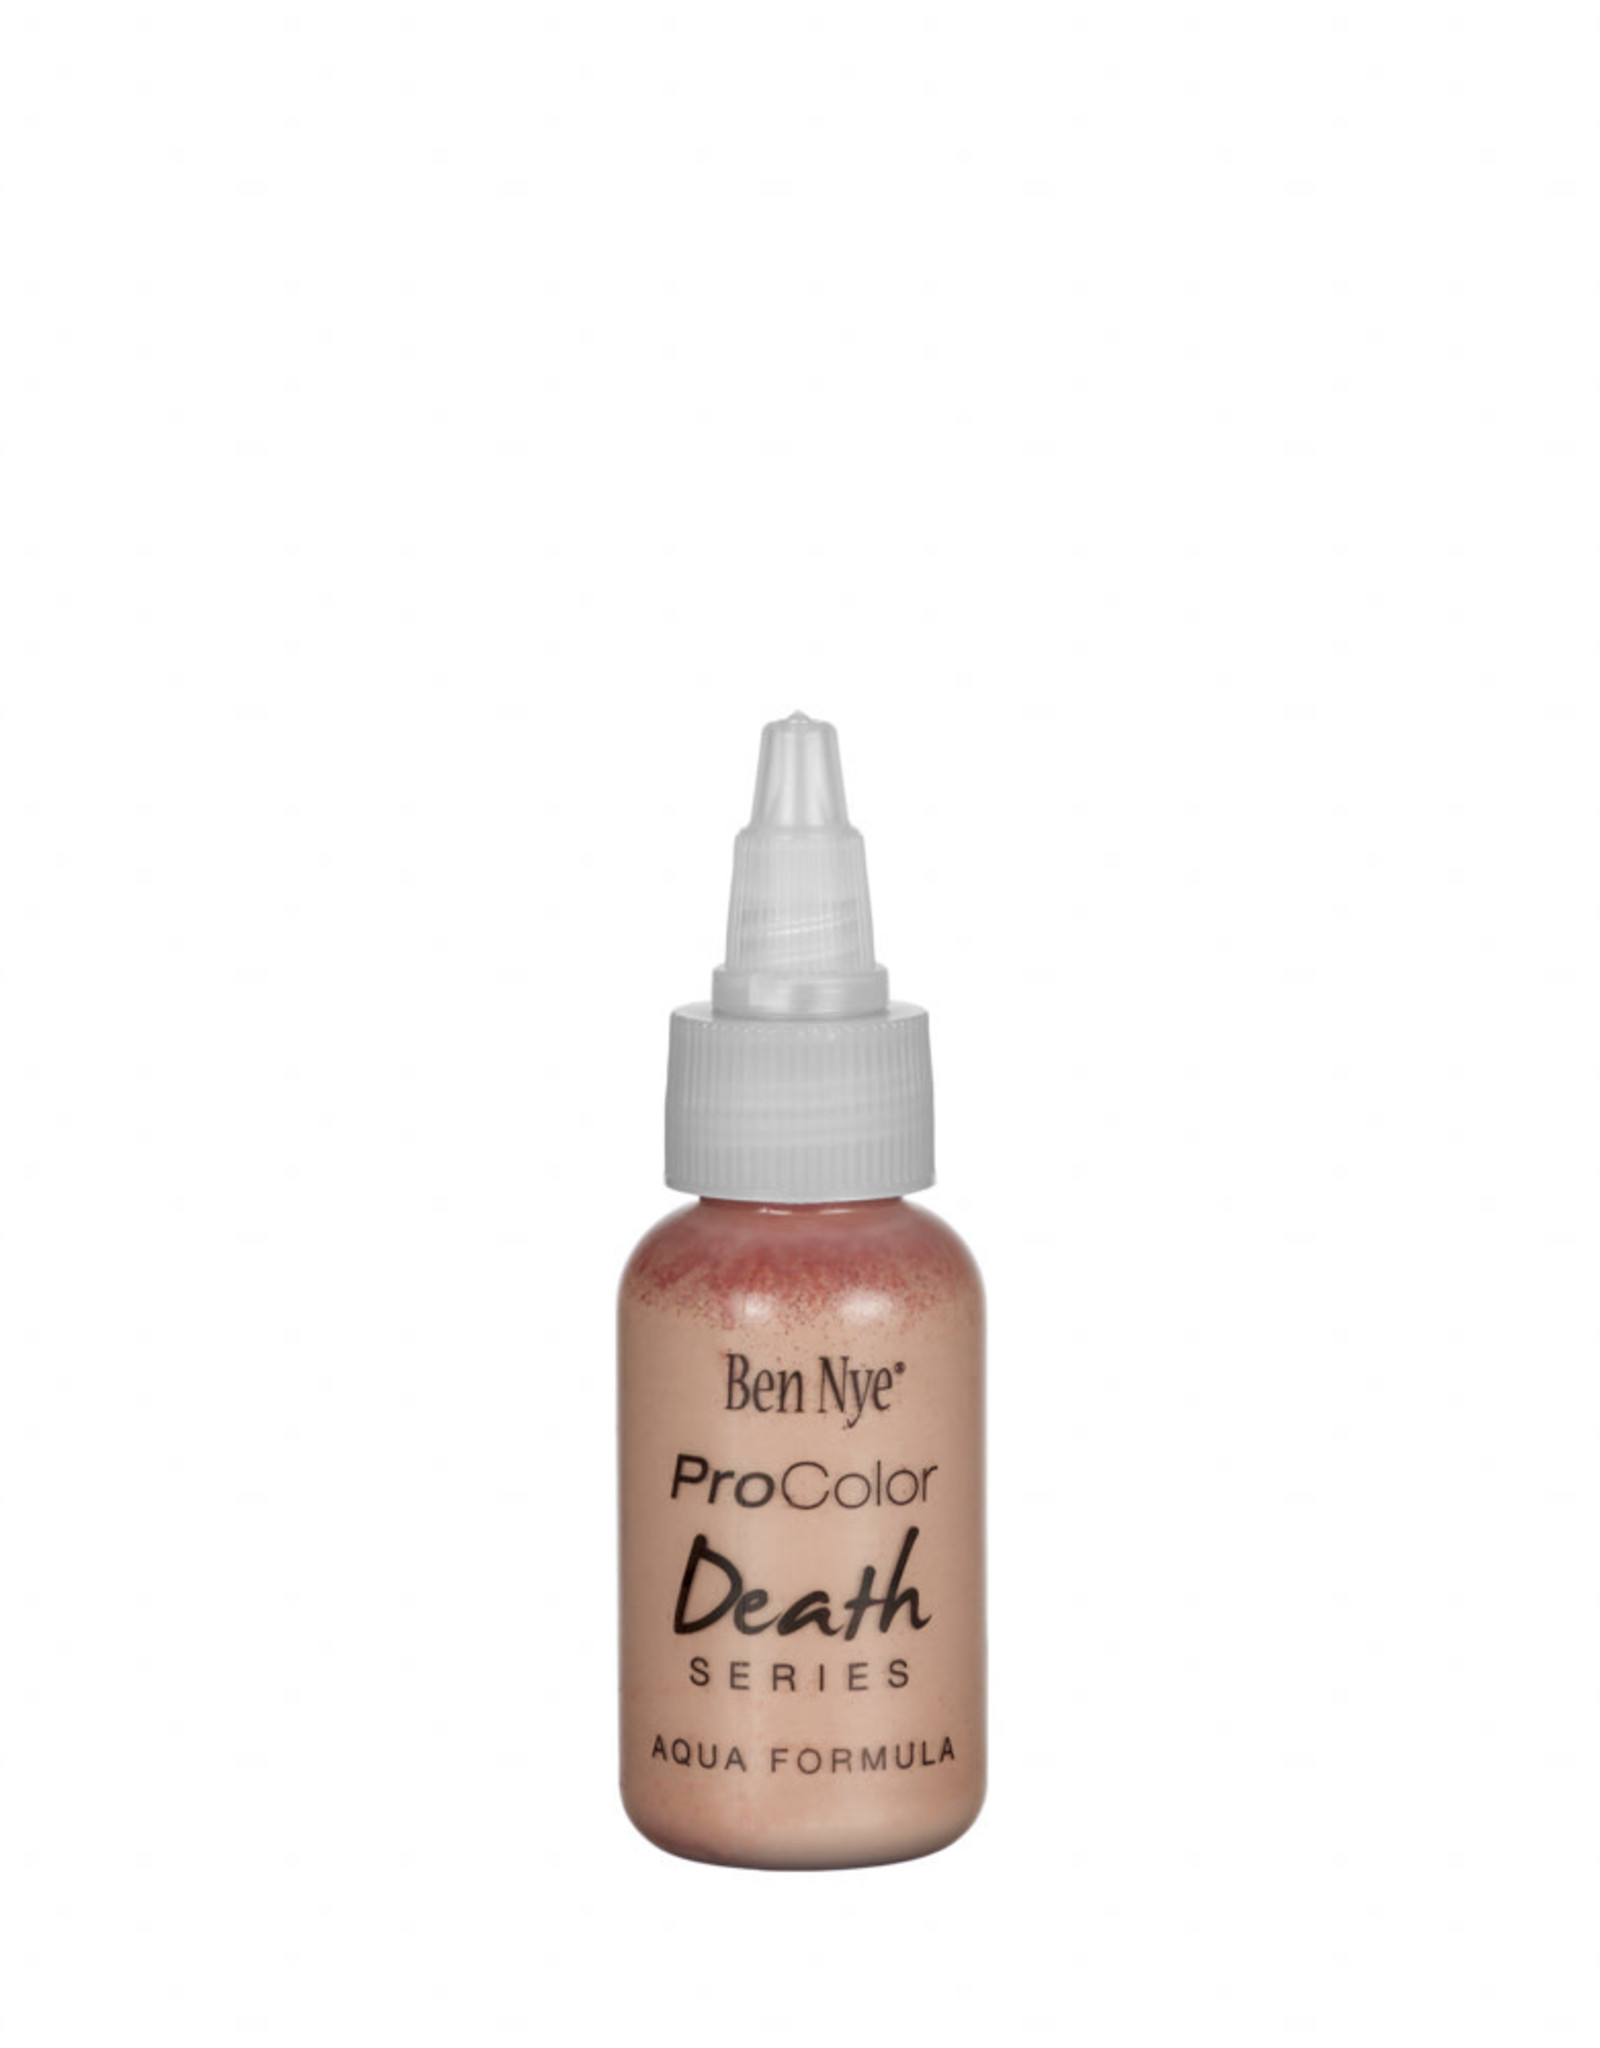 Ben Nye PROCOLOR AIRBRUSH PAINT-DEATH, PALE VAMPIRE, 1 OZ